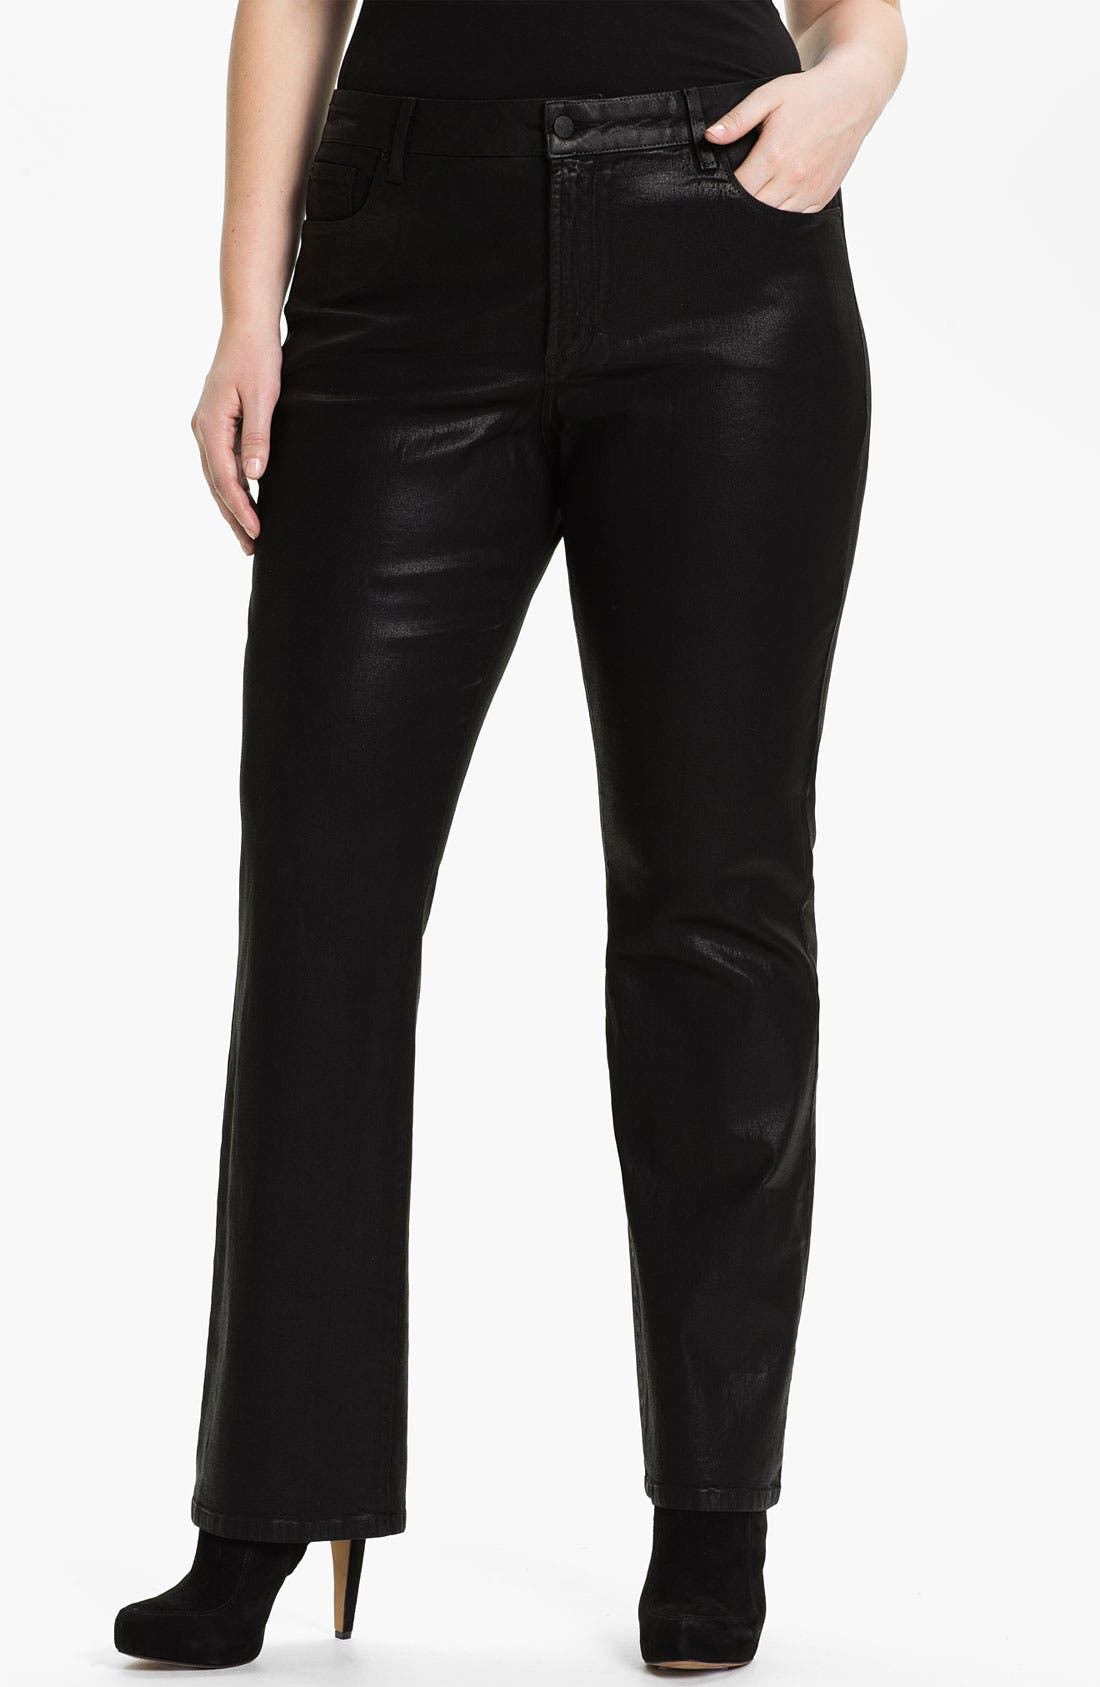 Main Image - NYDJ 'Marilyn' Coated Bootcut Jeans (Plus)